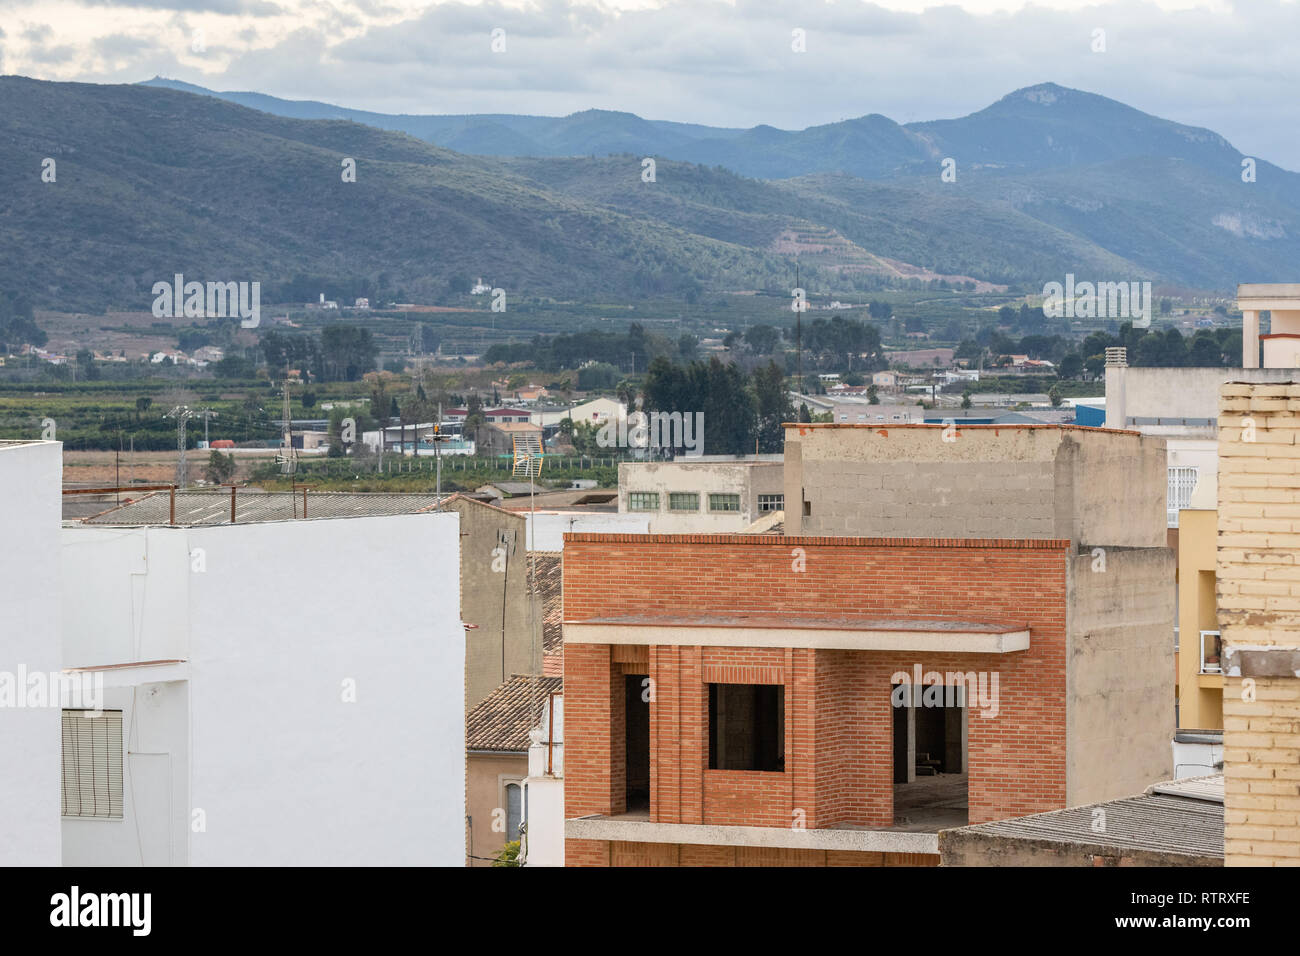 Under construction residental building in small town in Spain, Canals. - Stock Image